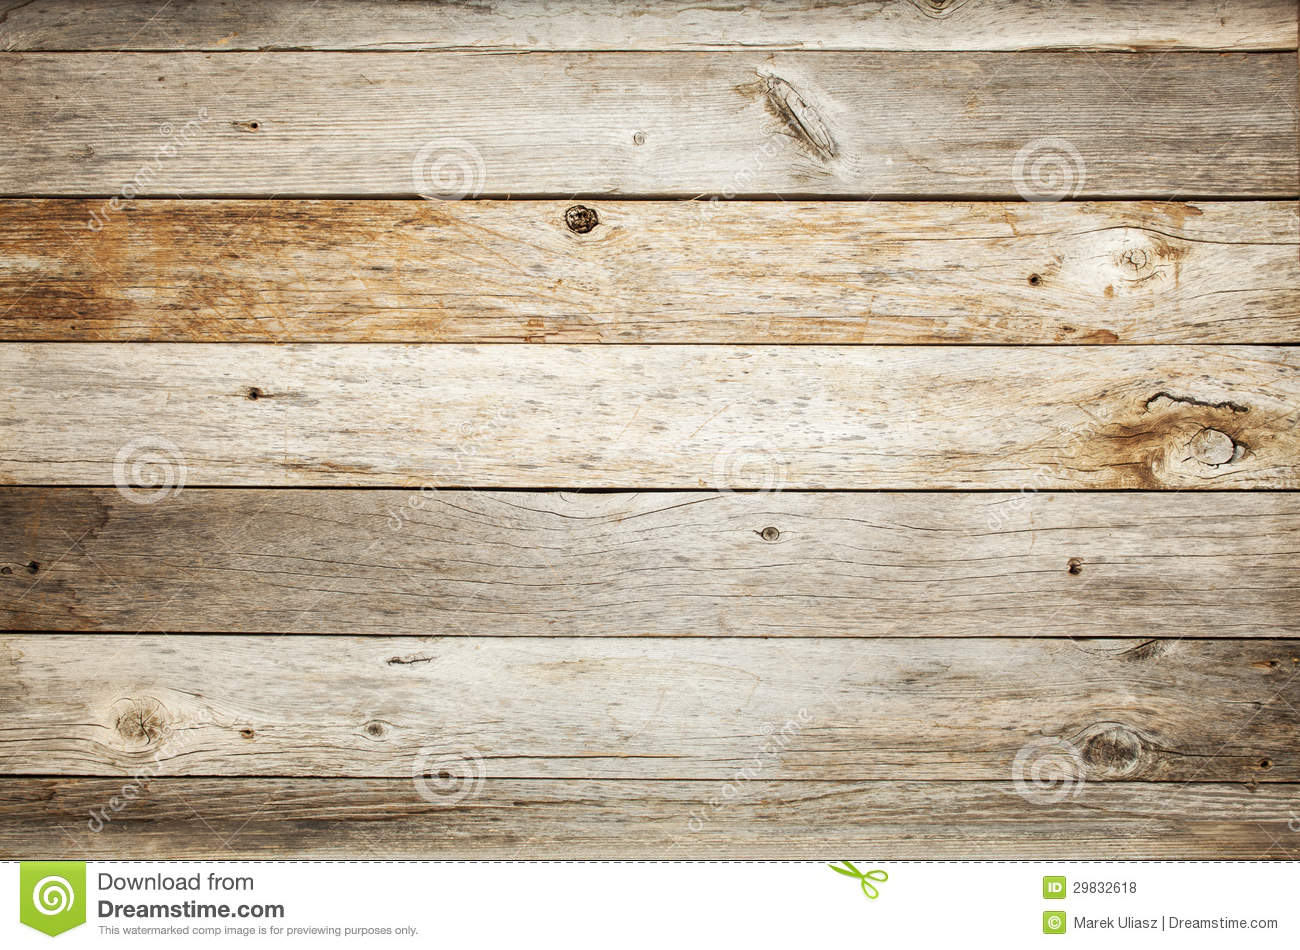 Rustic barn wood background 1300x950